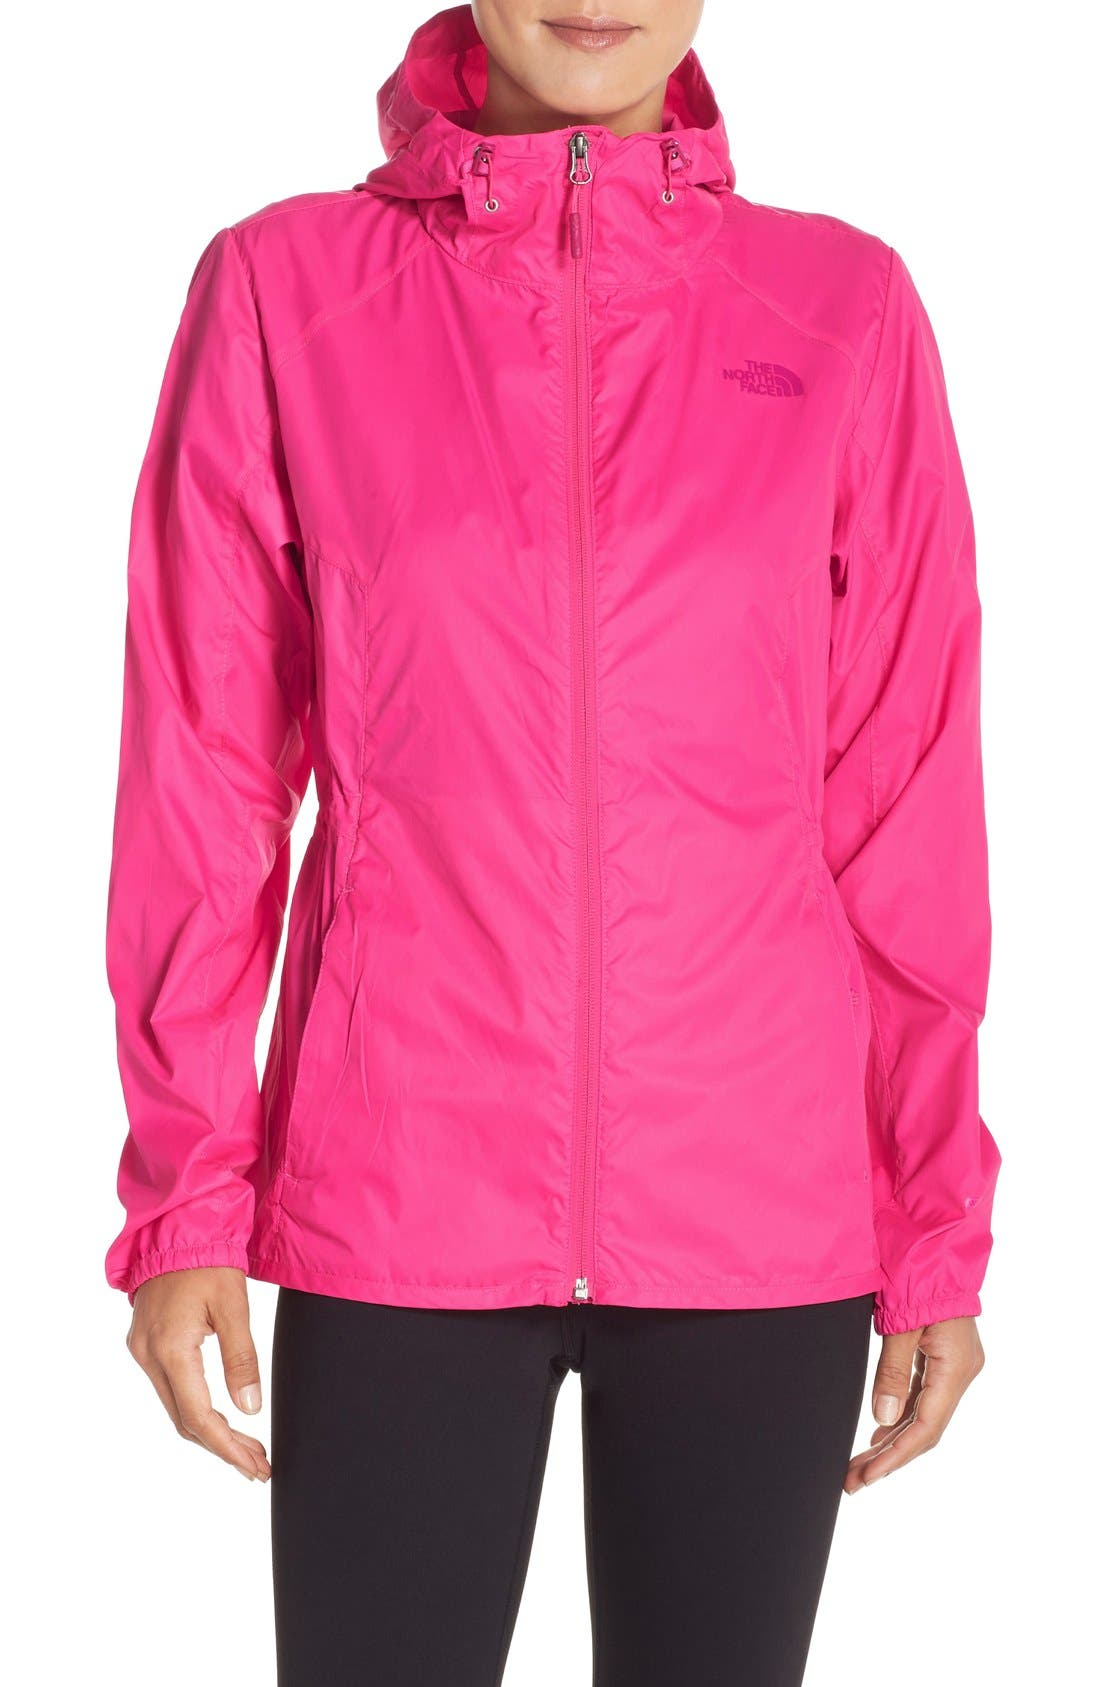 Alternate Image 1 Selected - The North Face 'Flyweight' Hooded Jacket